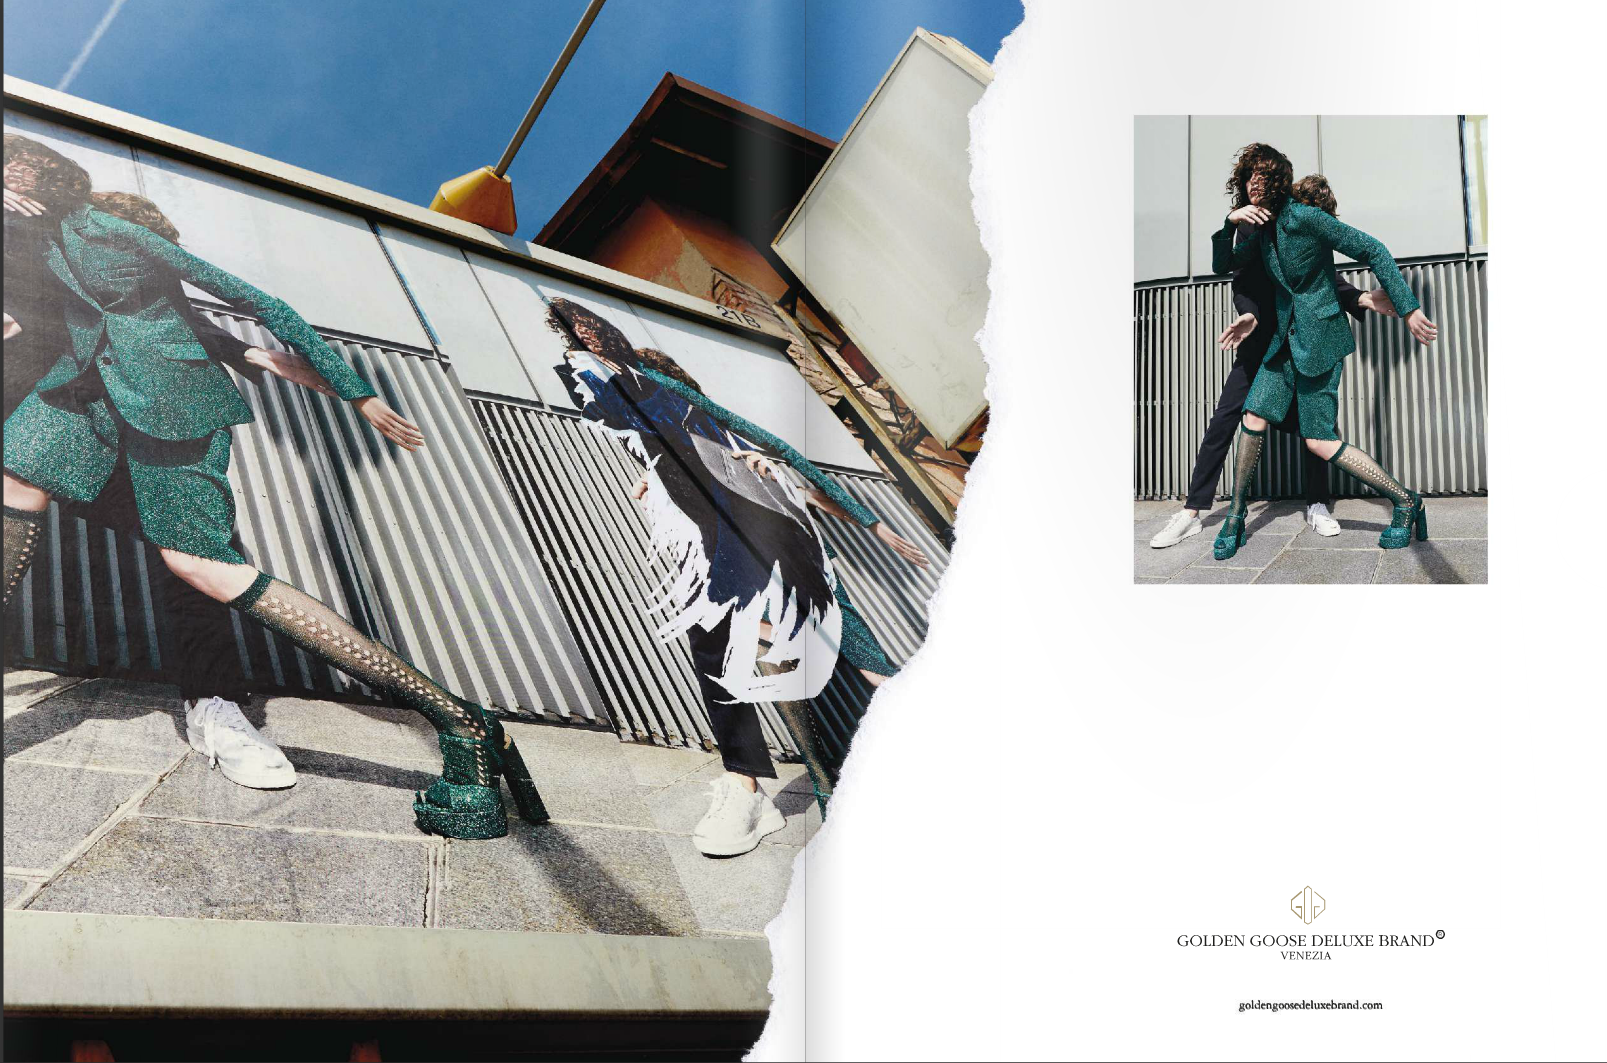 Golden Goose Deluxe Brand ADV FW 2016 | Alessio Bolzoni | Golden Goose Deluxe Brand | Interview Germany | Andreas Peter Krings | Numerique Retouch Photo Retouching Studio